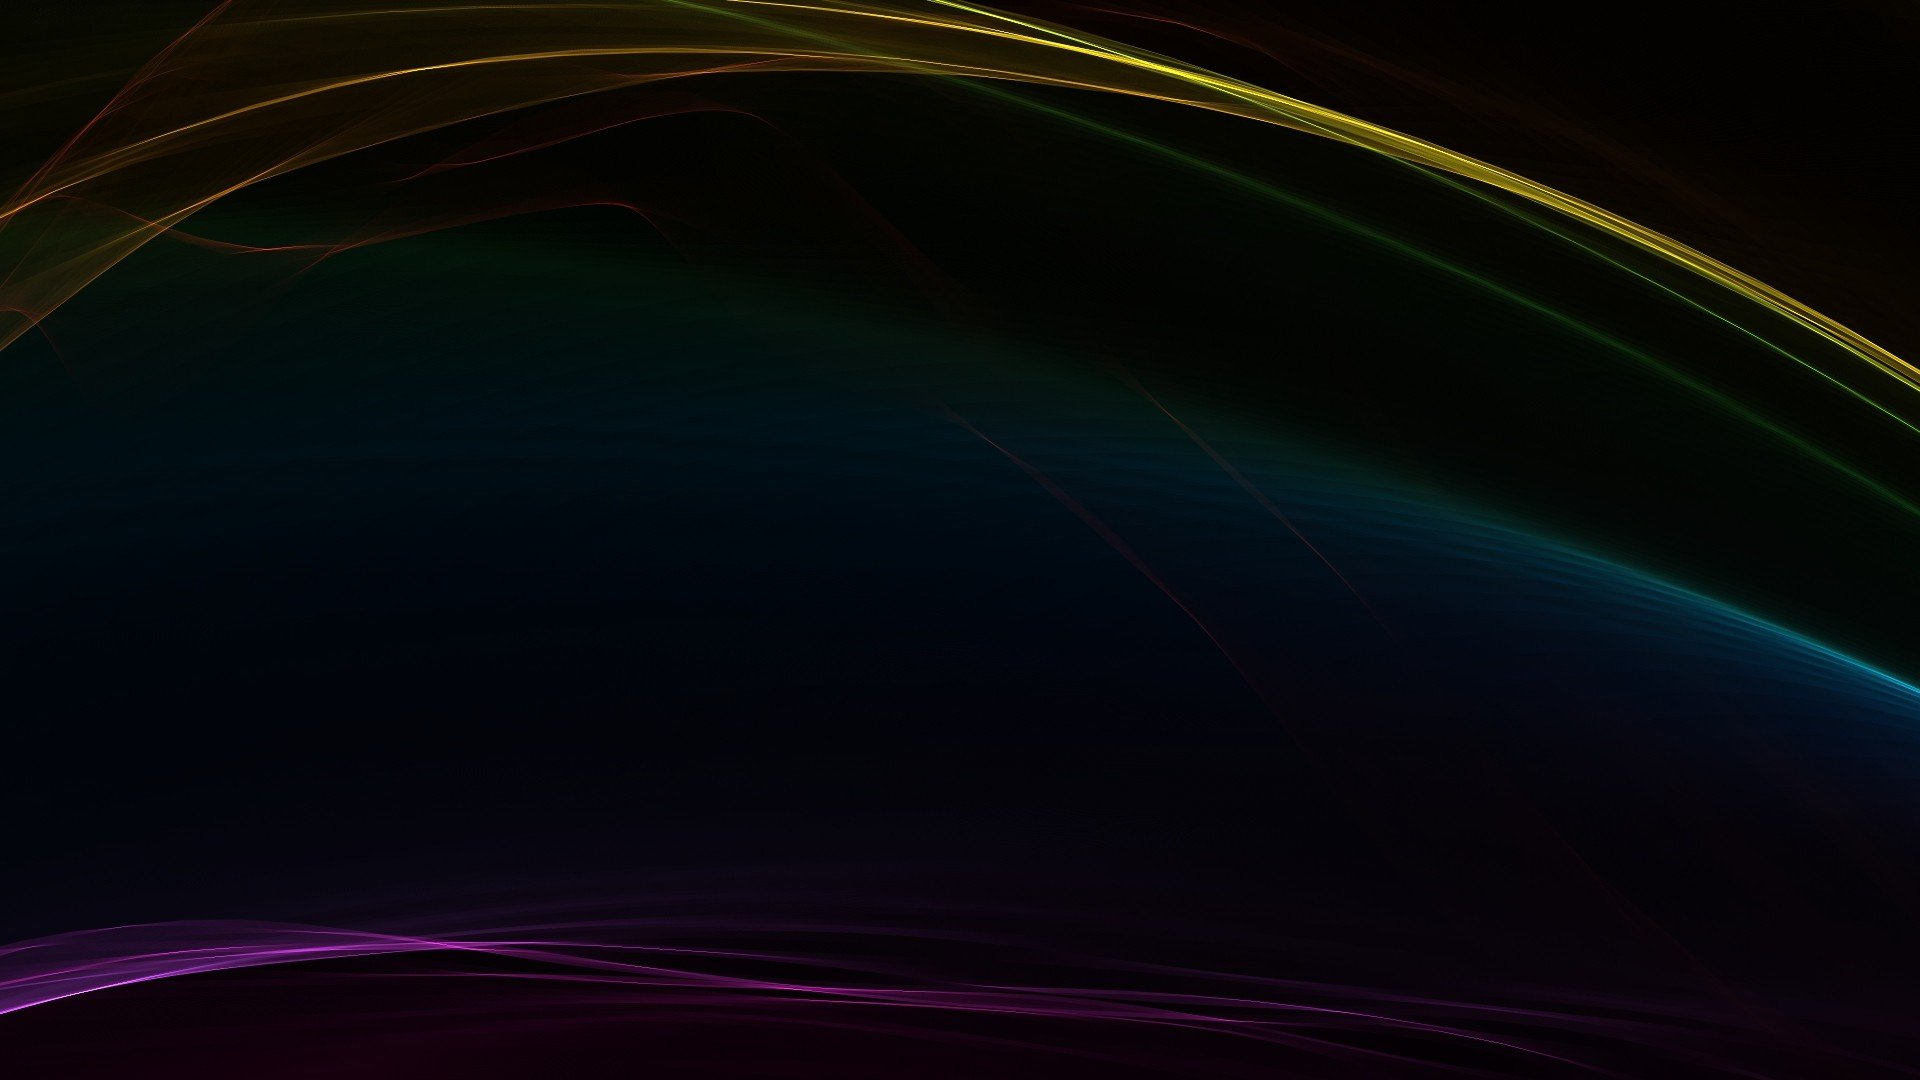 Abstract Black Wallpaper 1920x1080 Abstract Black Minimalistic 1920x1080